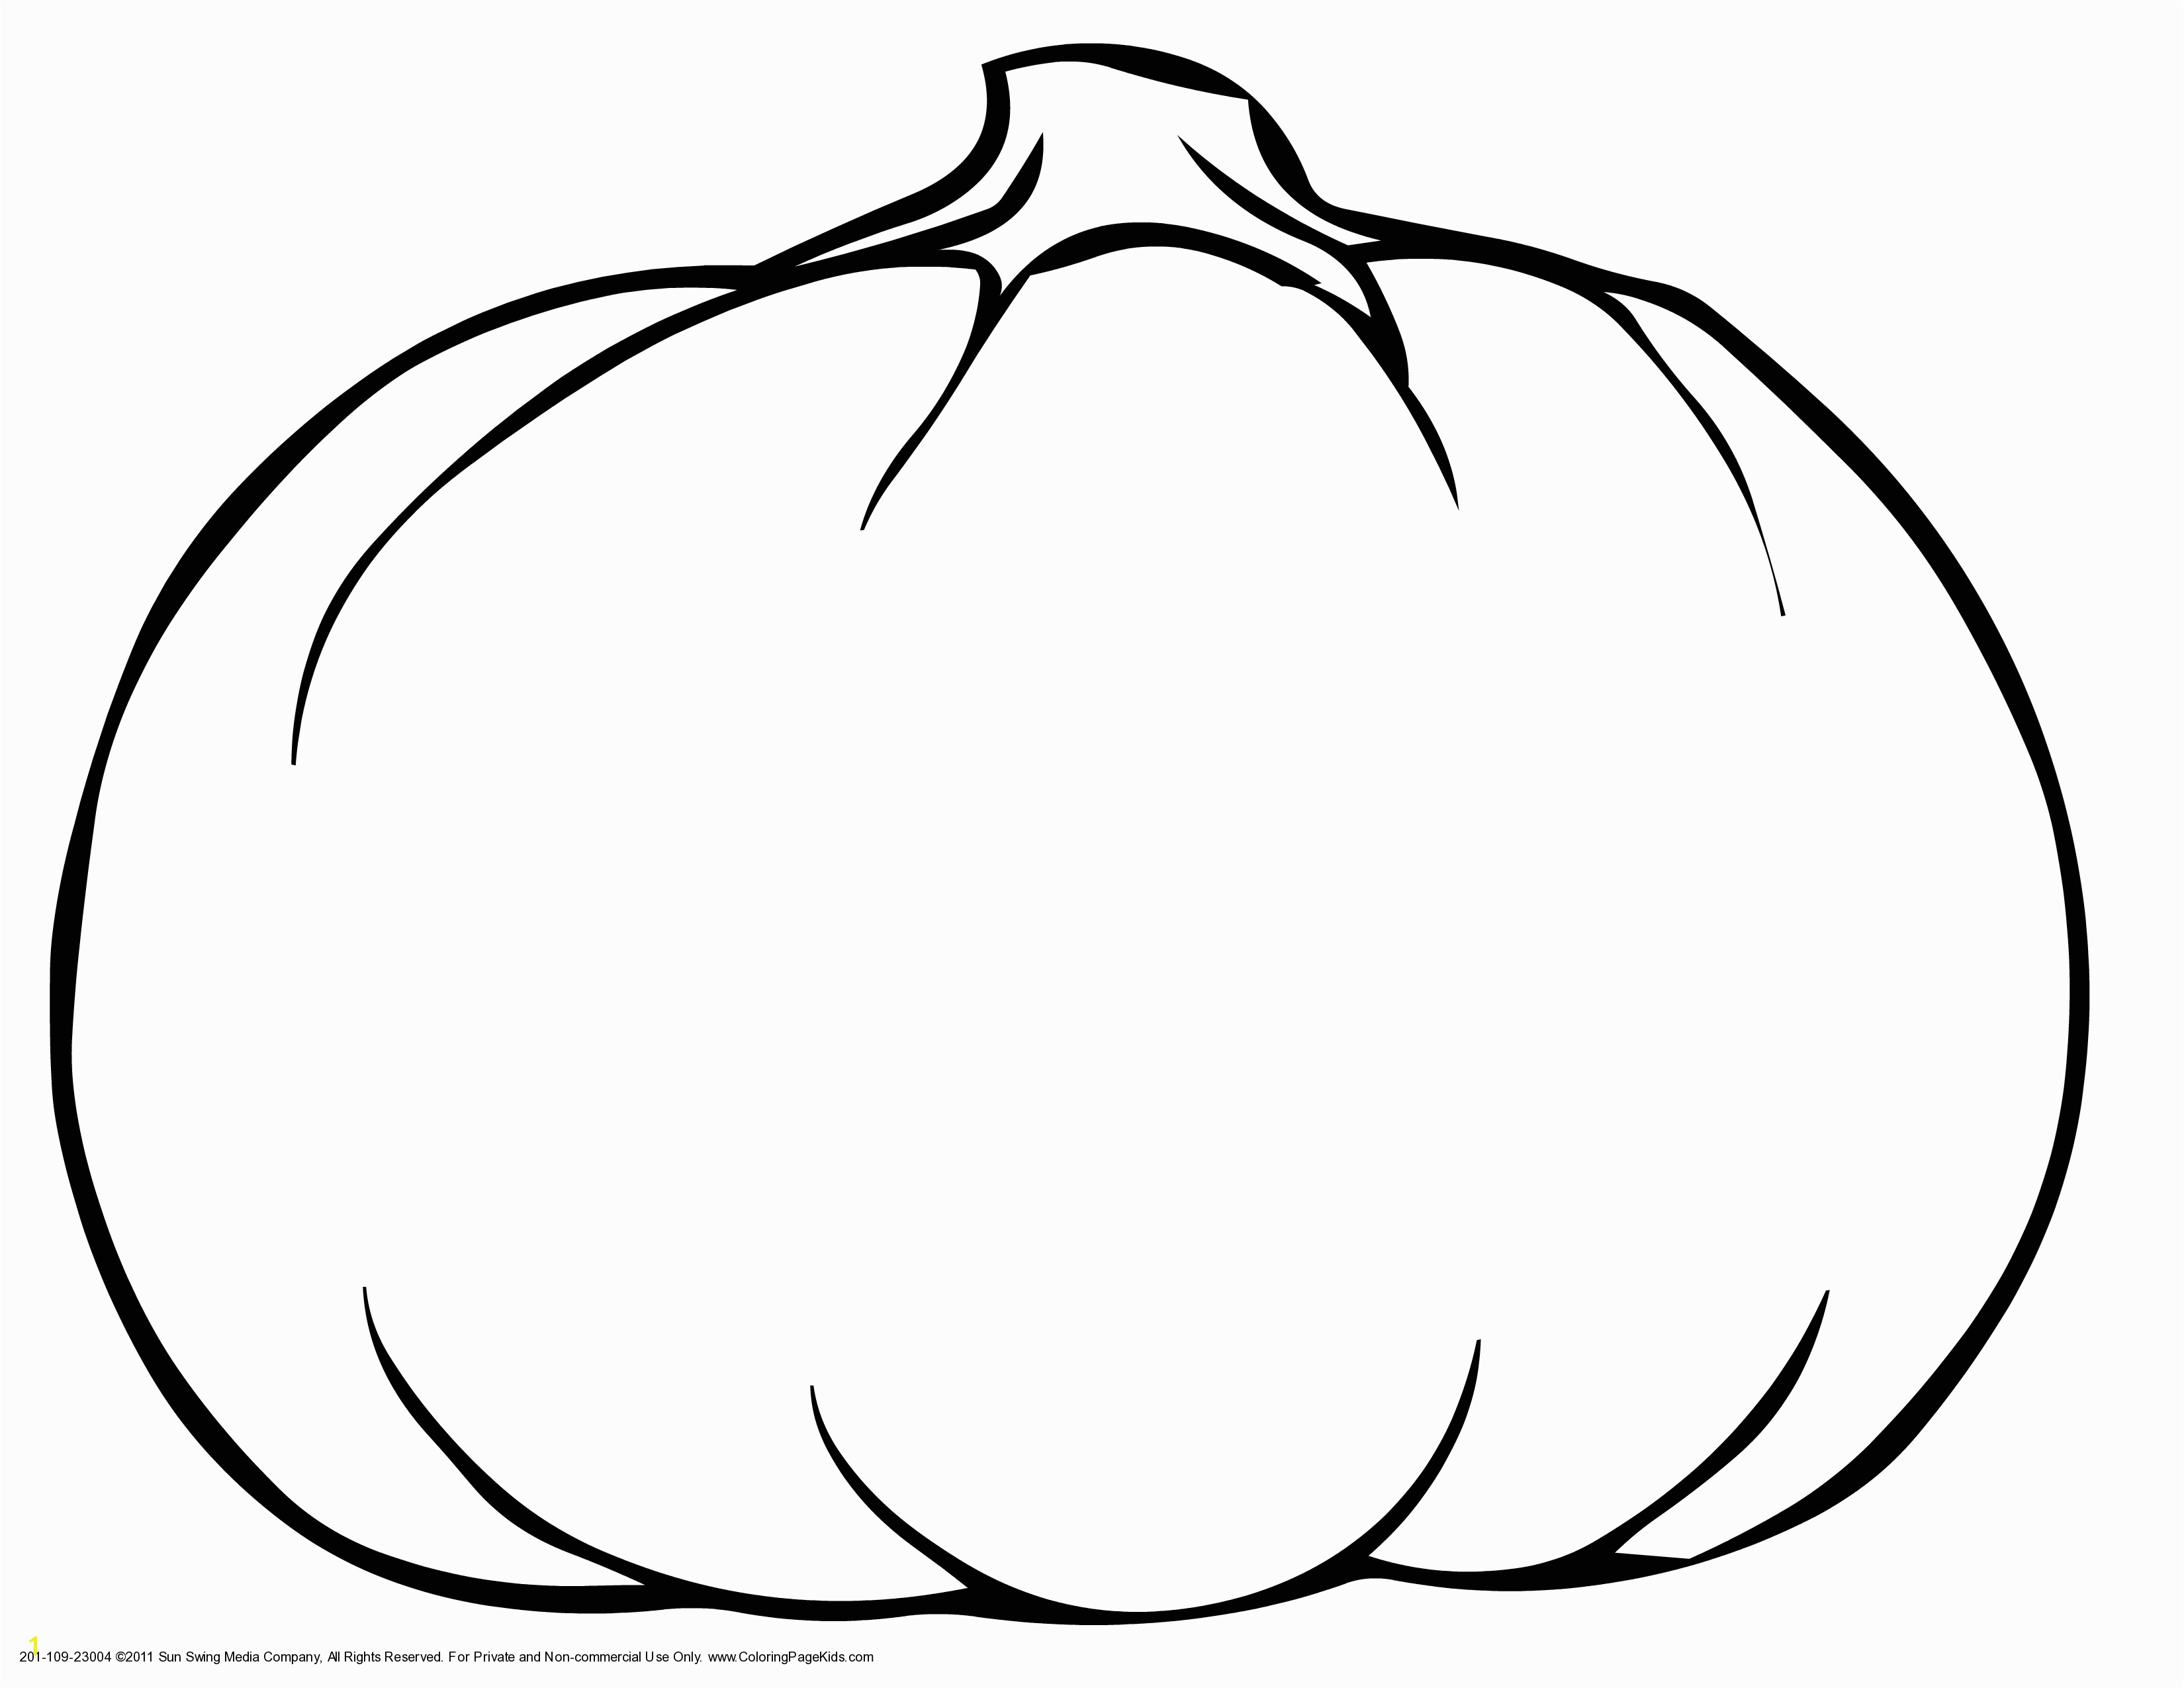 This is best Pumpkin Outline Printable Coloring Pages Pumpkins Colorine Net for your project or presentation to use for personal or mersial